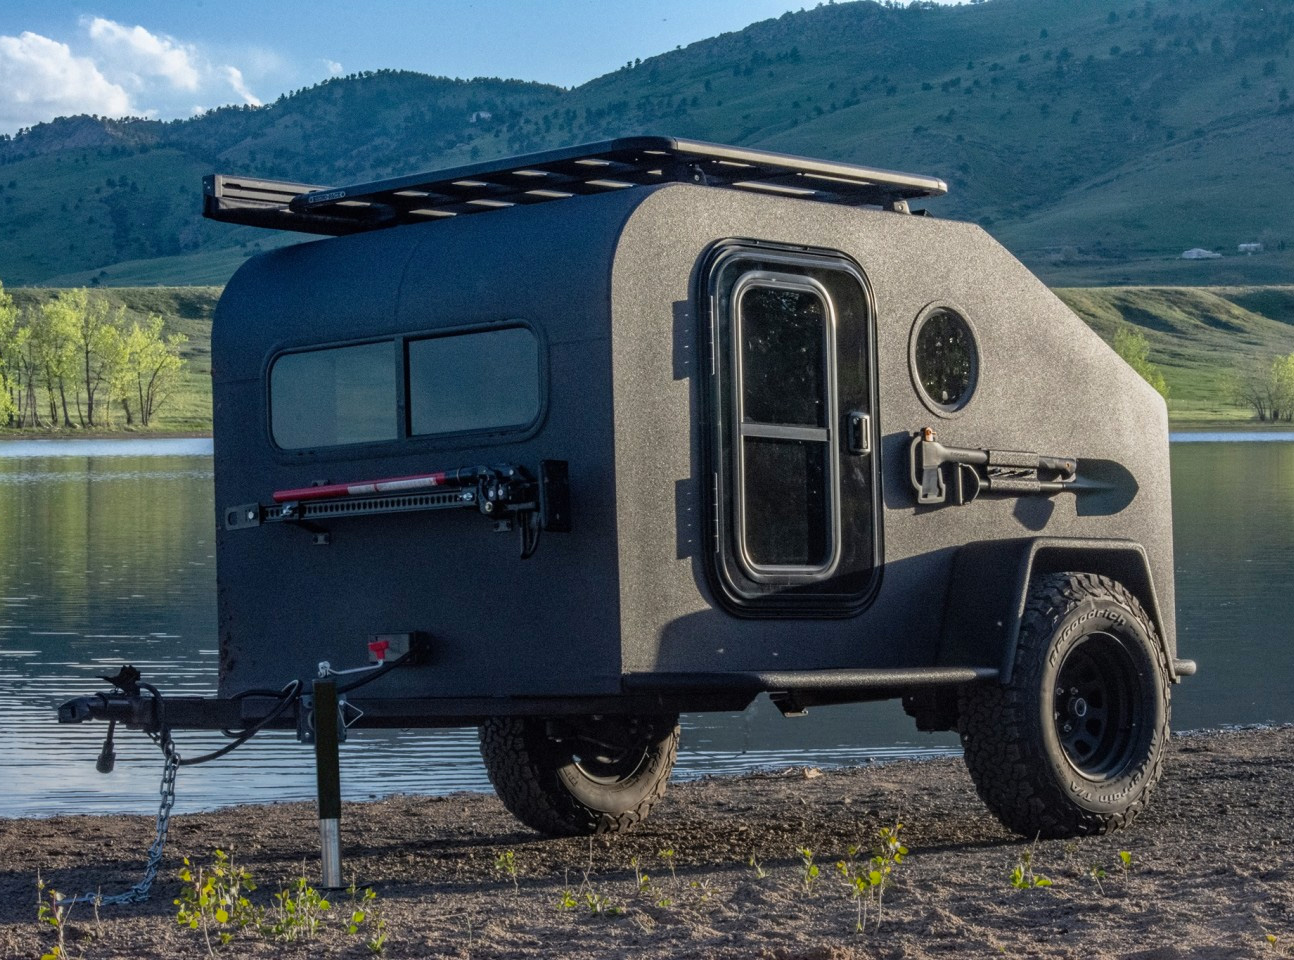 The NS-1 Off-Road Camper is All-Electric at werd.com